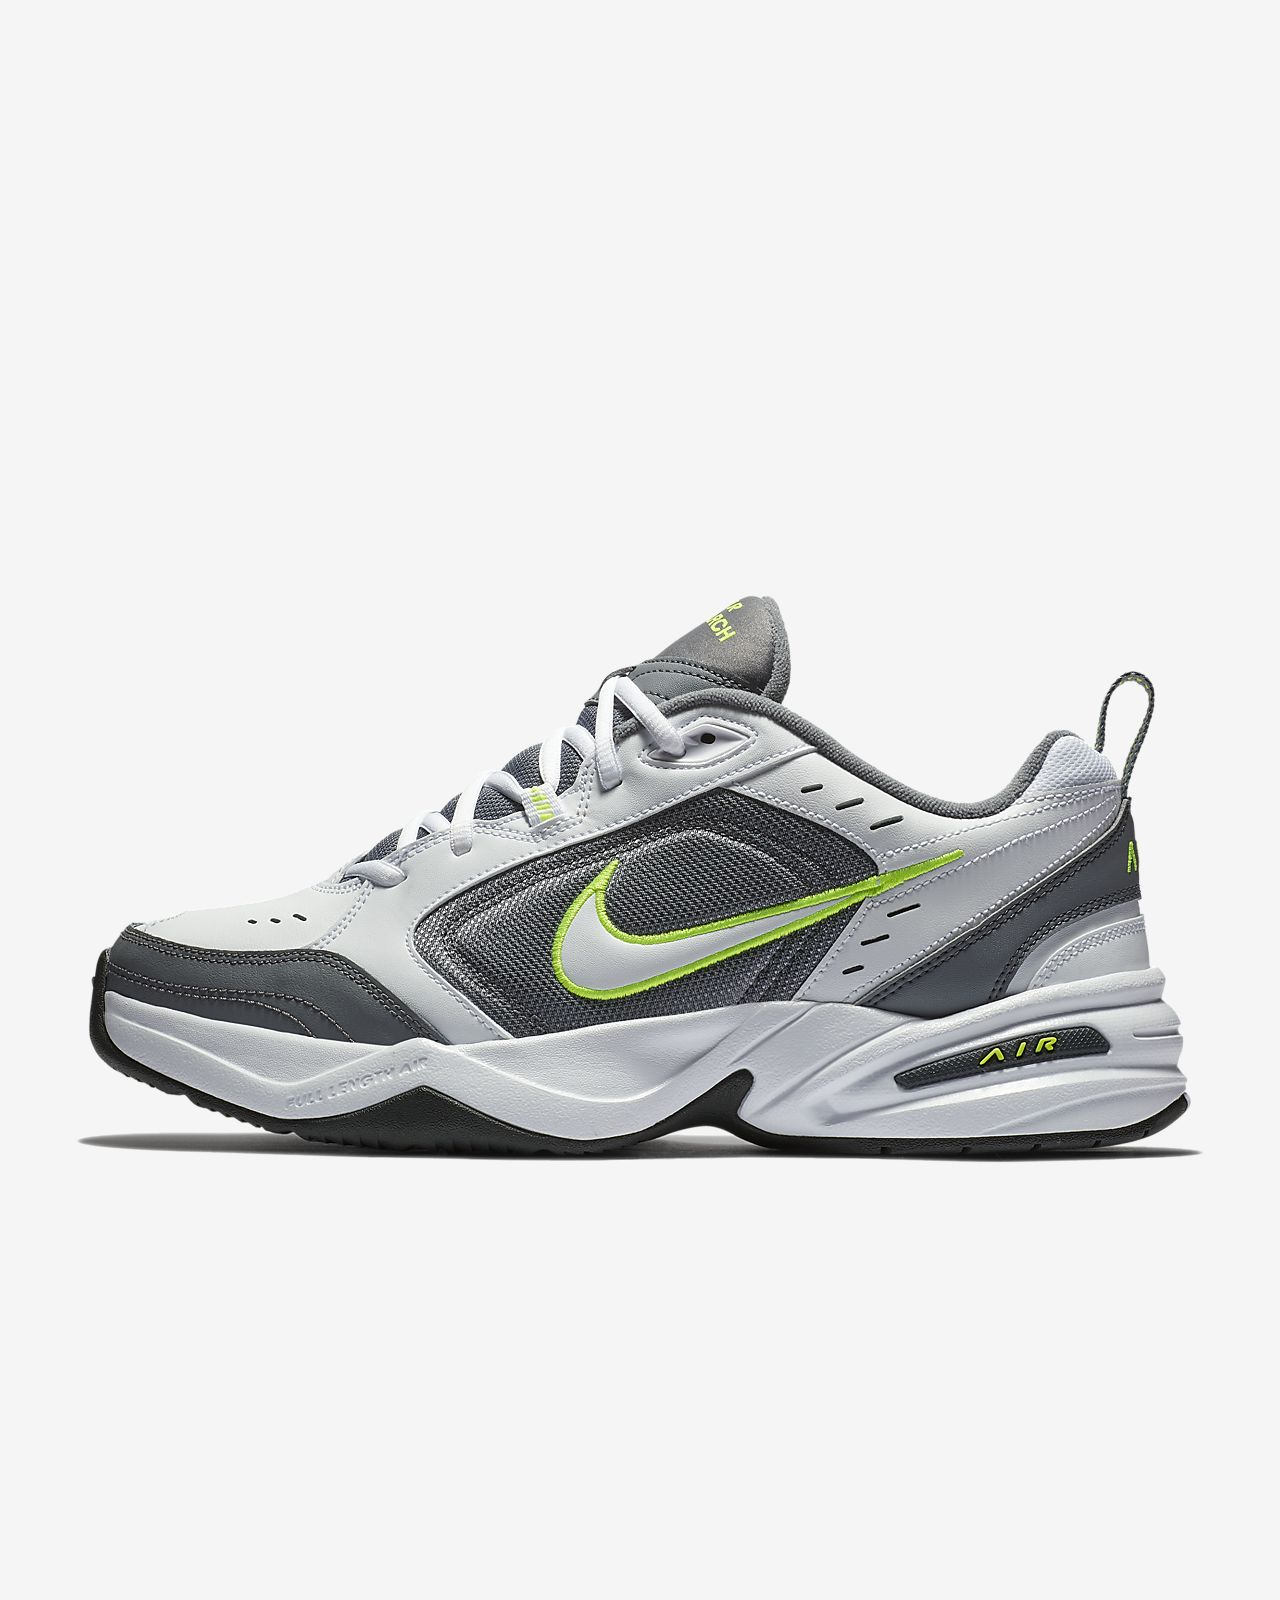 259777322a6 Nike Air Monarch IV Lifestyle Gym Shoe. Nike.com